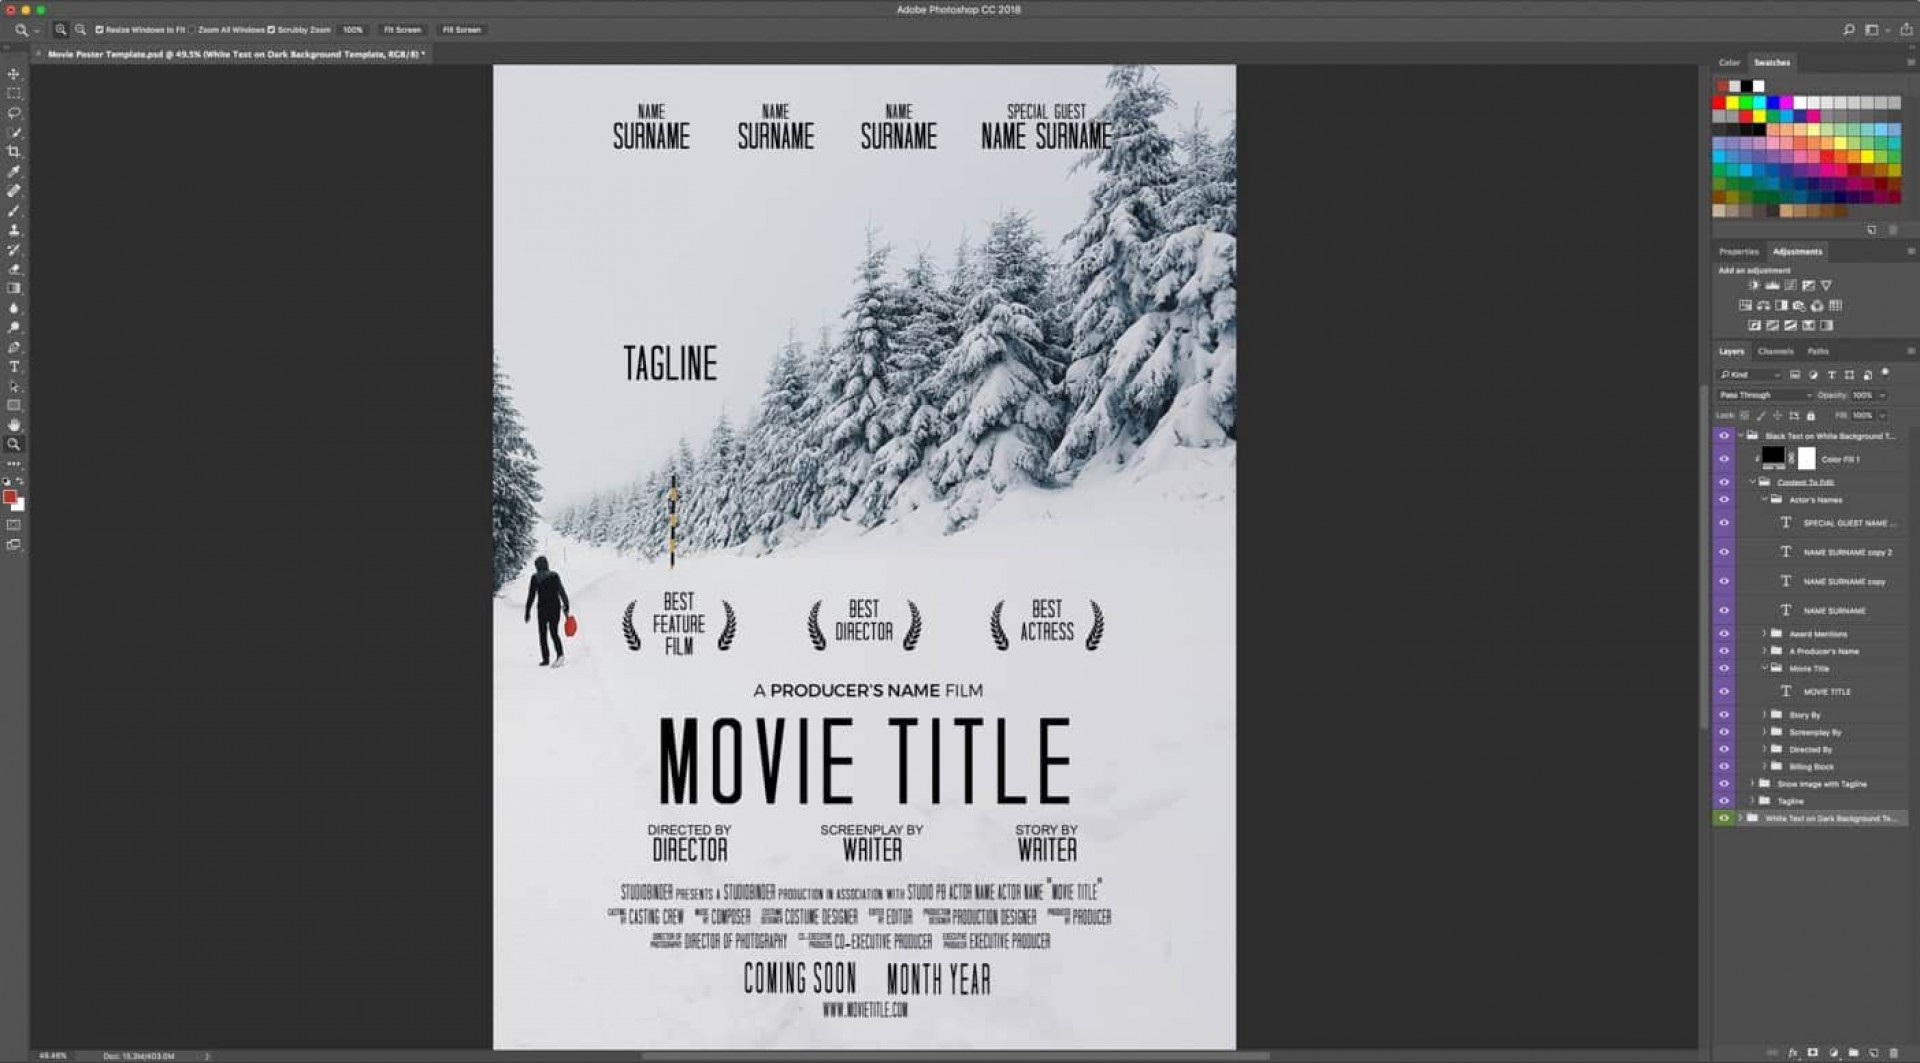 002 Exceptional Free Photoshop Movie Poster Template Design  Templates1920